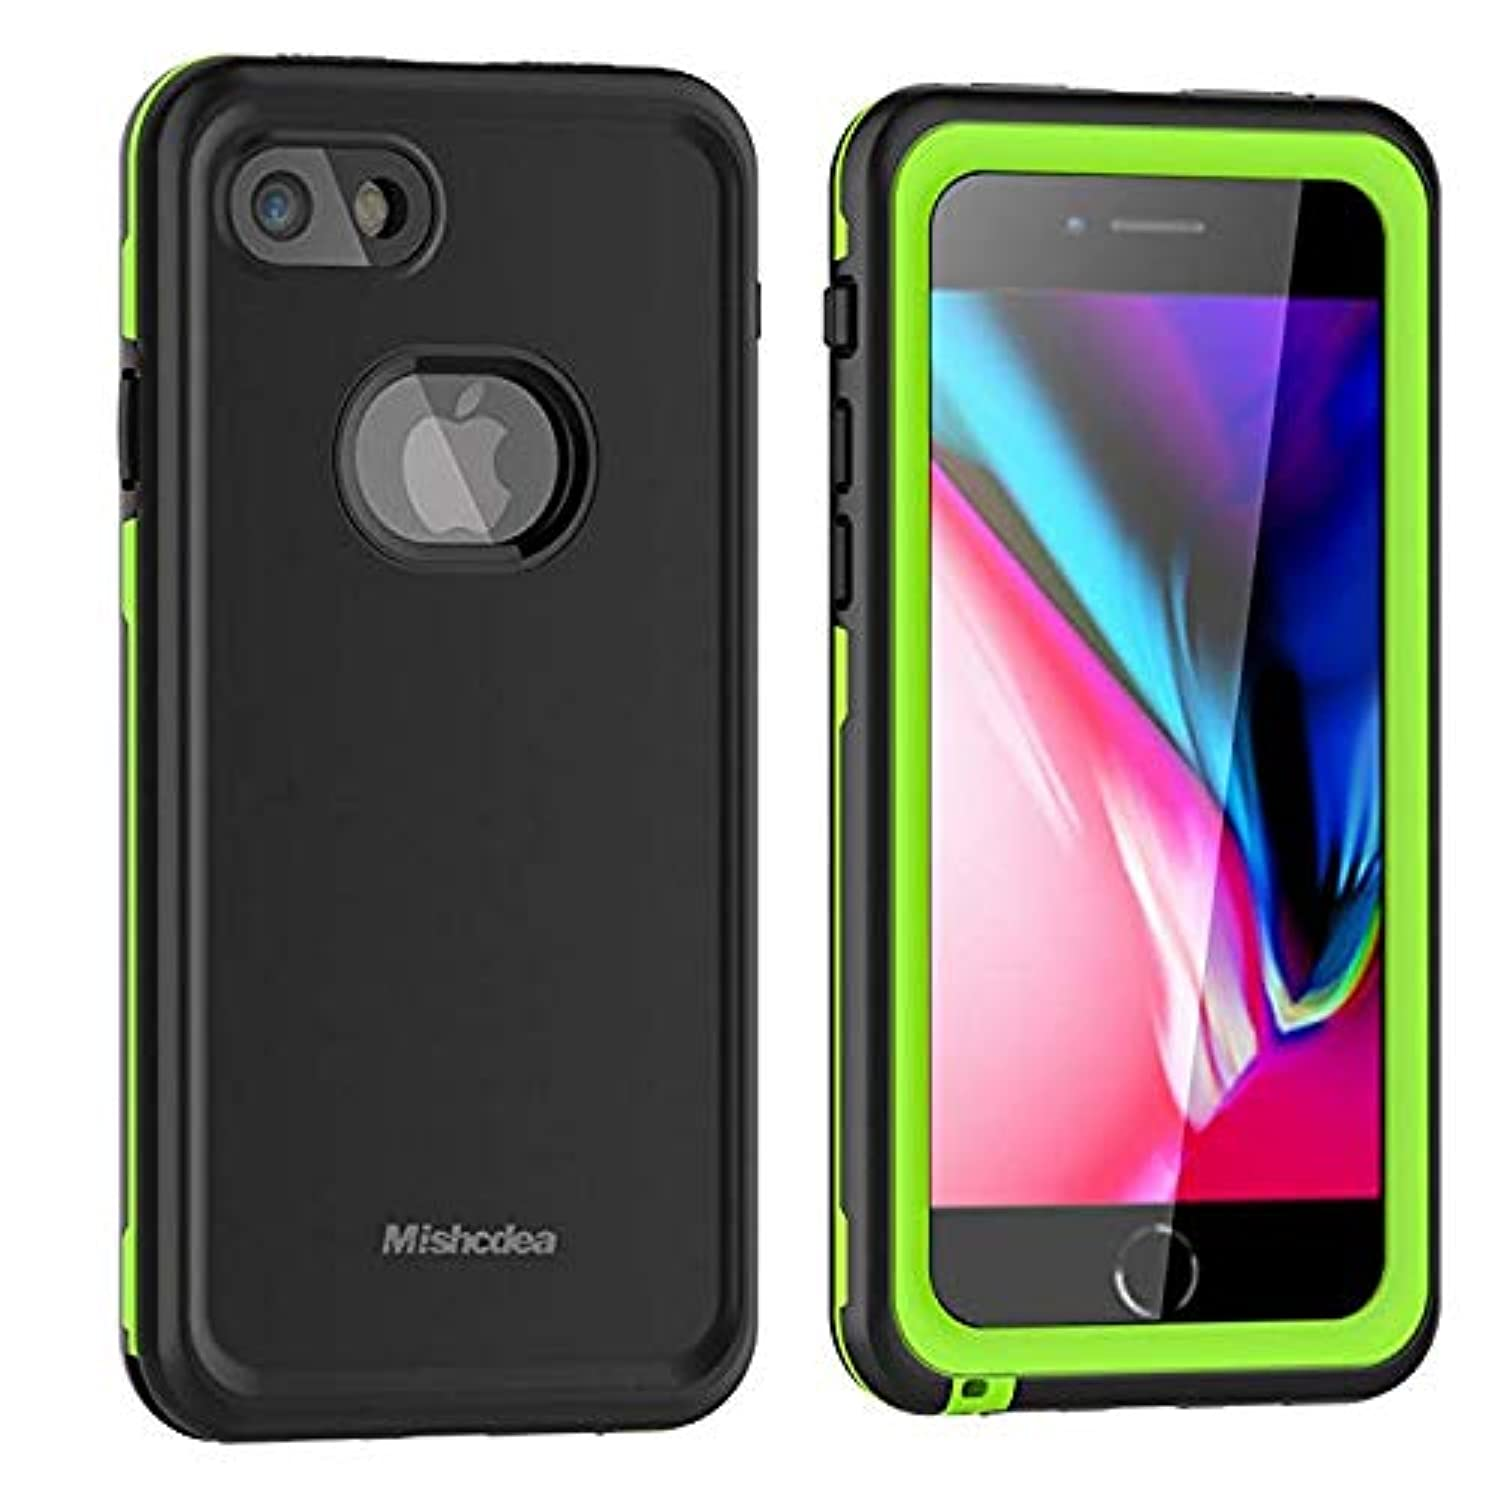 Waterproof Case Suitable for iPhone 7/8, Mishcdea Phone Case Shockproof Snow-Proof Dirt-Proof Full Body Phone Protector Cover - Green